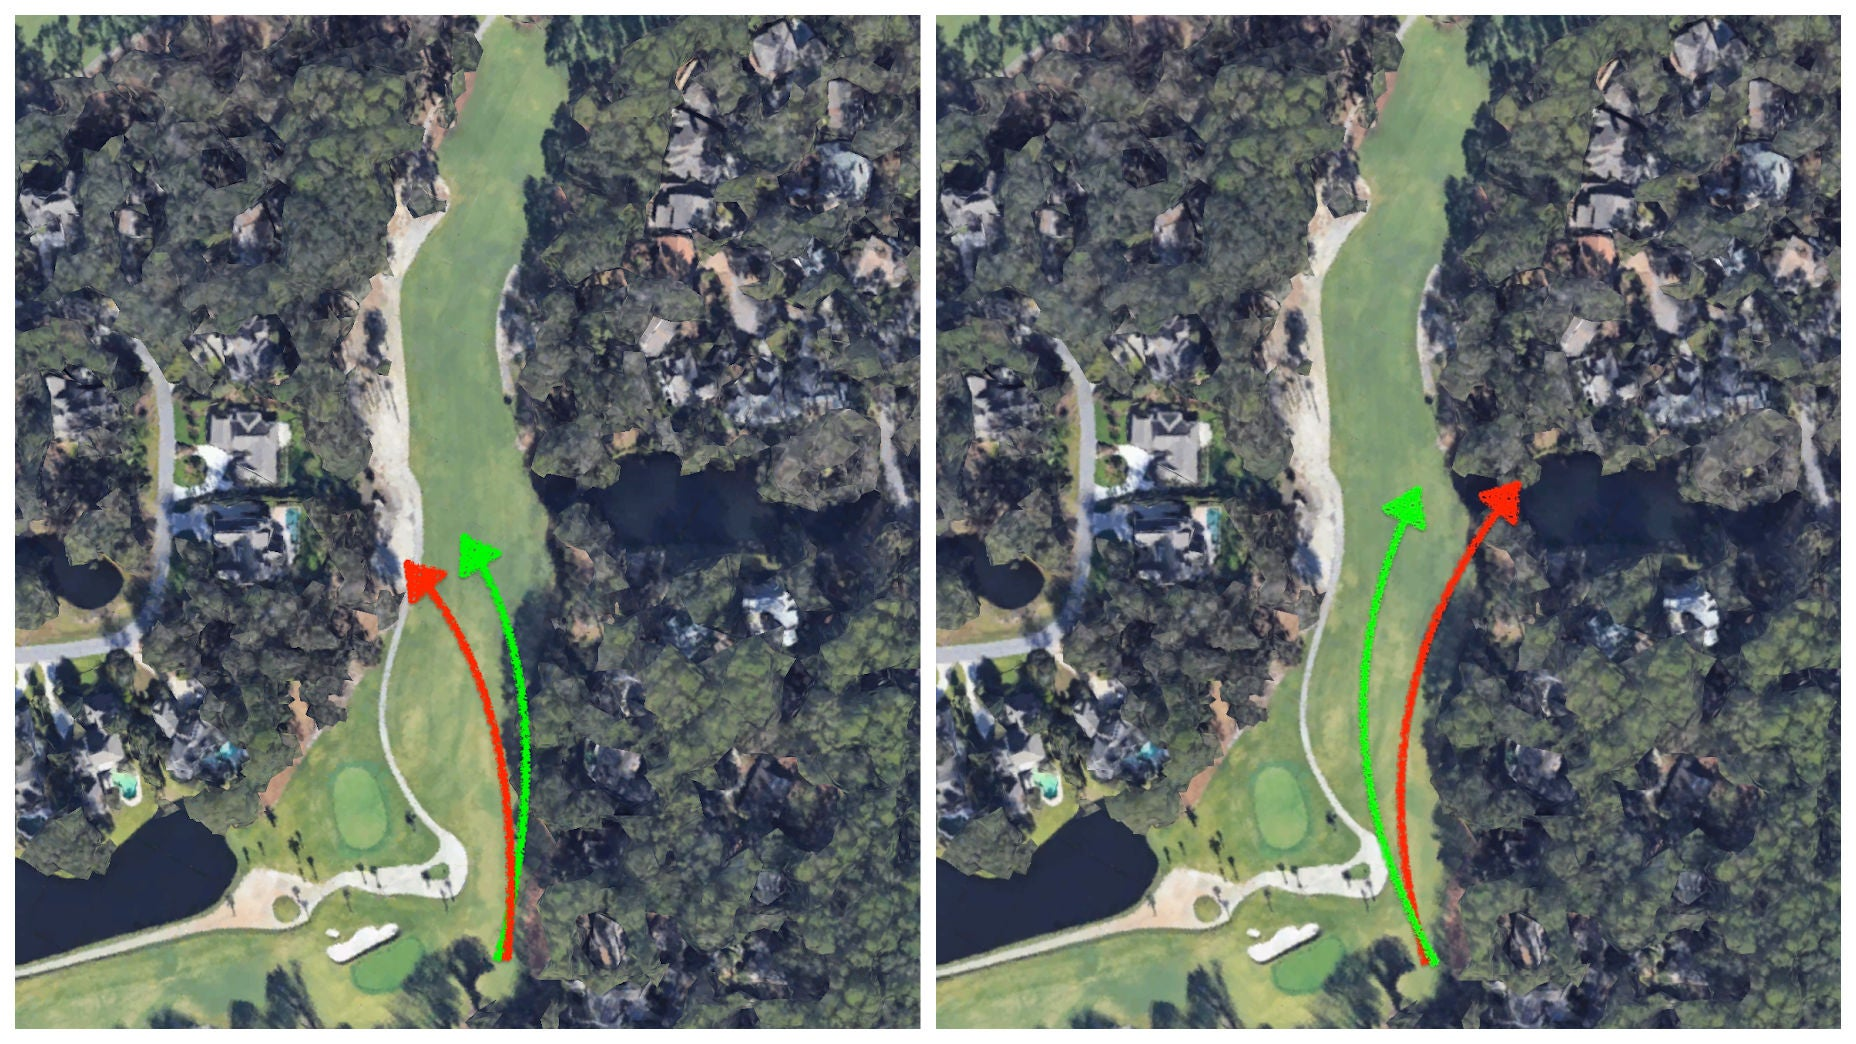 Two frames of a golf hole at Harbour Town Golf Links